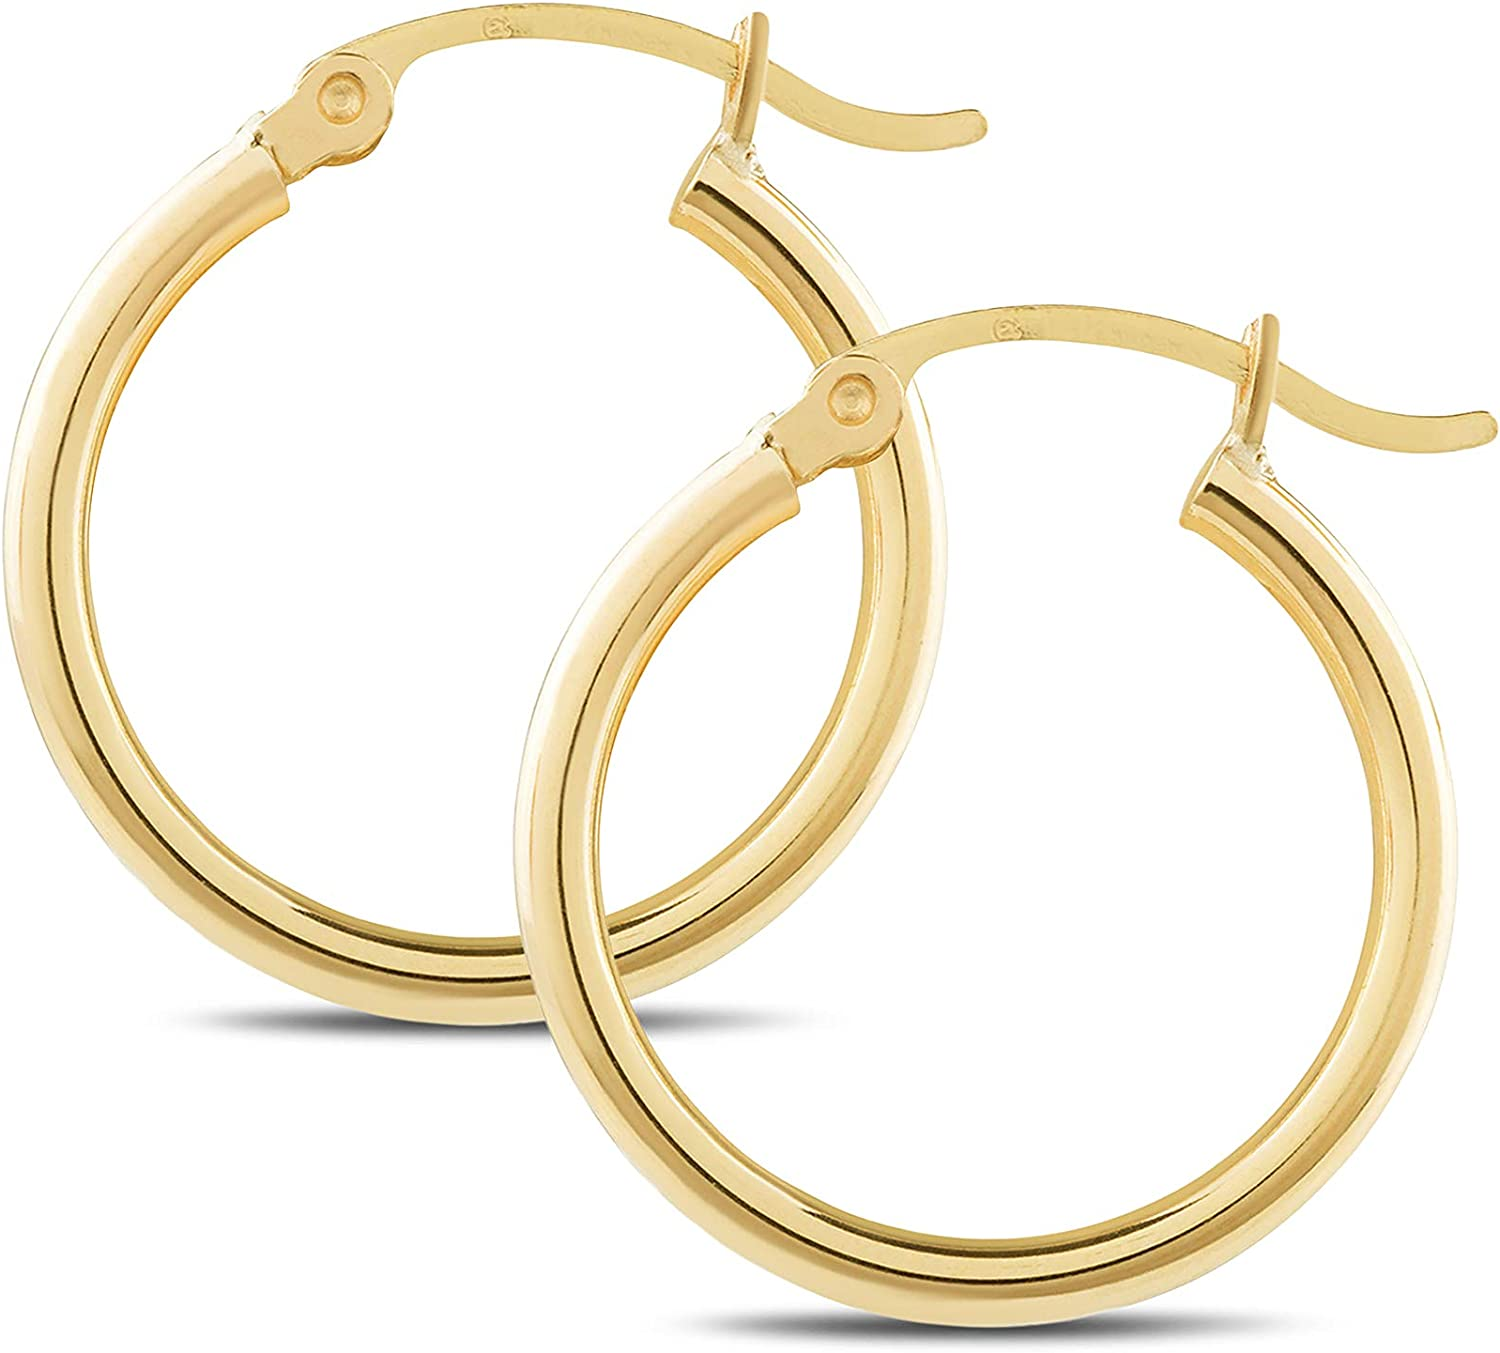 Classic Shiny Polished 2mm tube 14k Yellow Gold Round Hoop Earrings